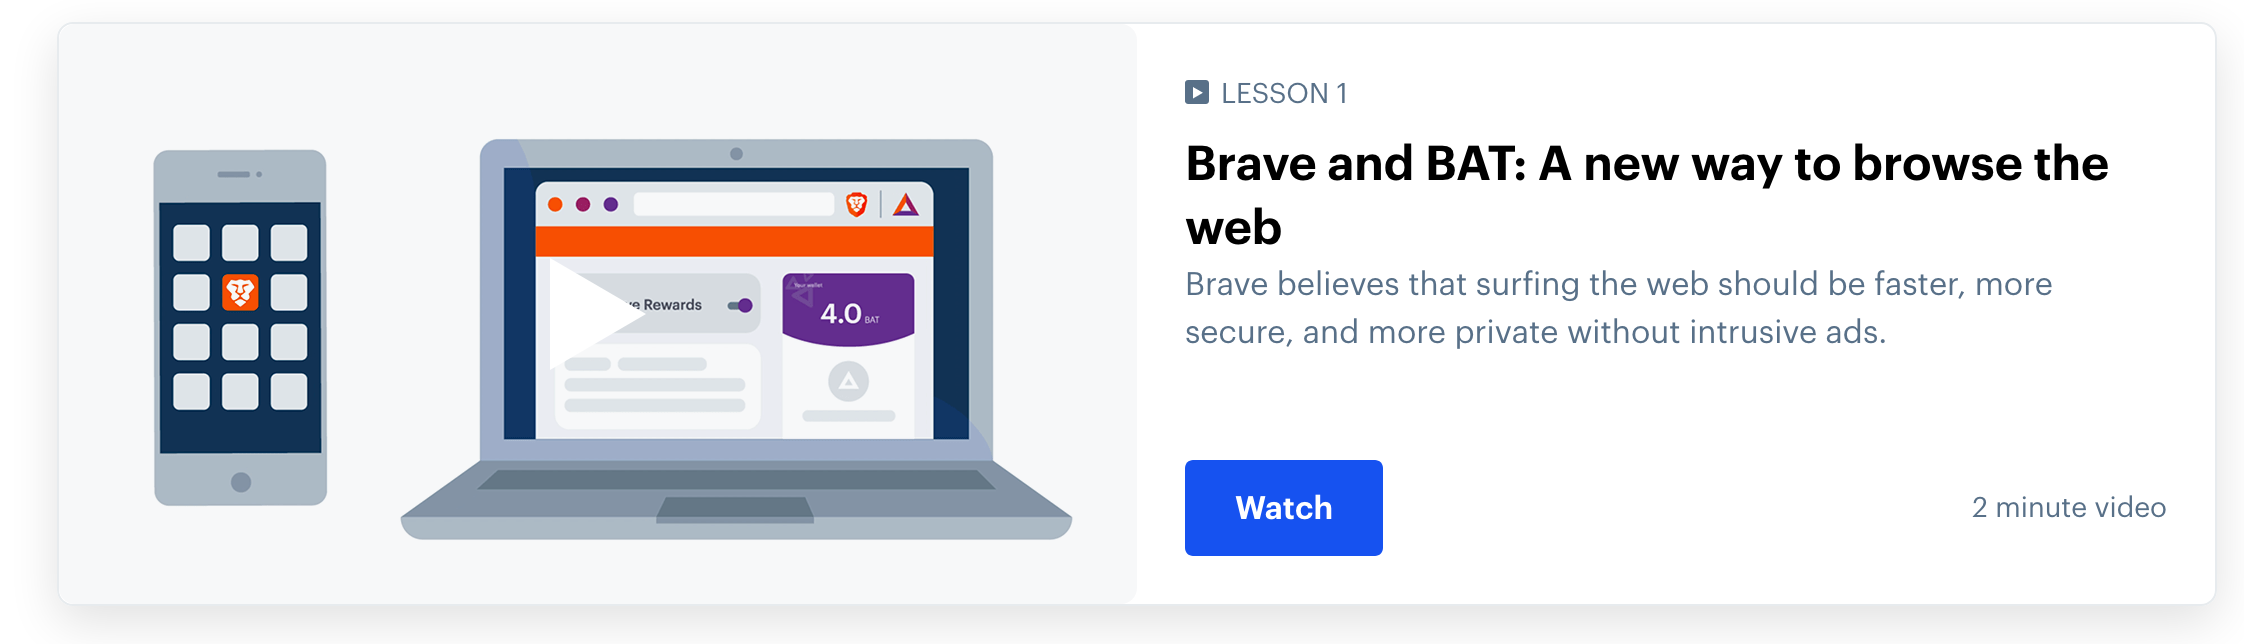 Coinbase: Start earning BAT by using the Brave browser, BAT